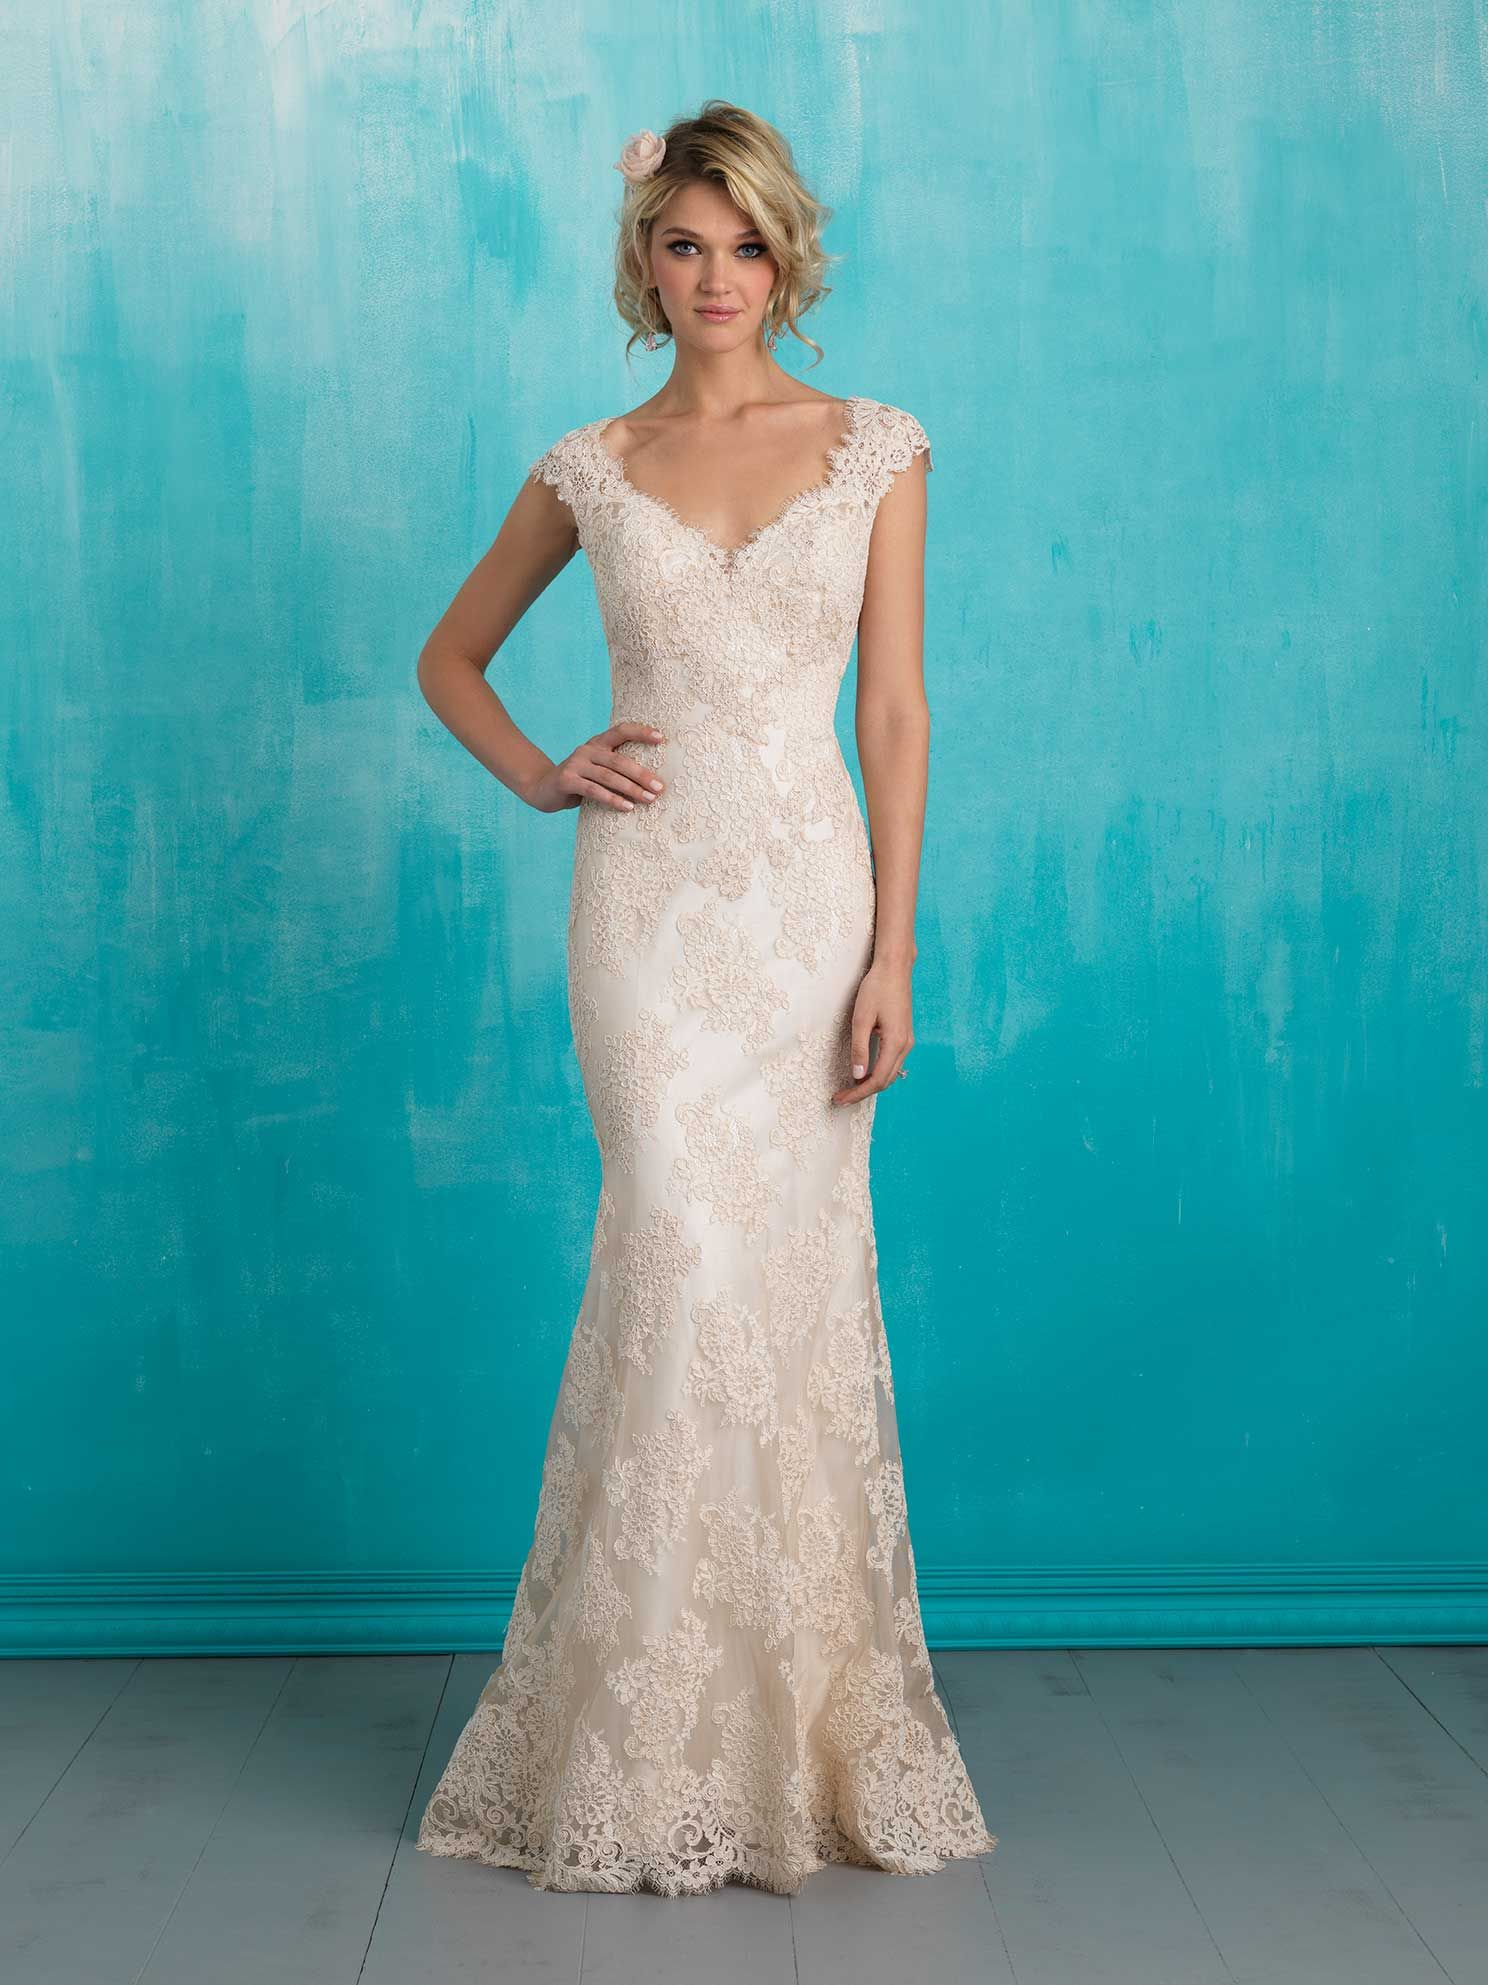 Stunning Collection of Sheath Wedding Dresses | Pinterest ...